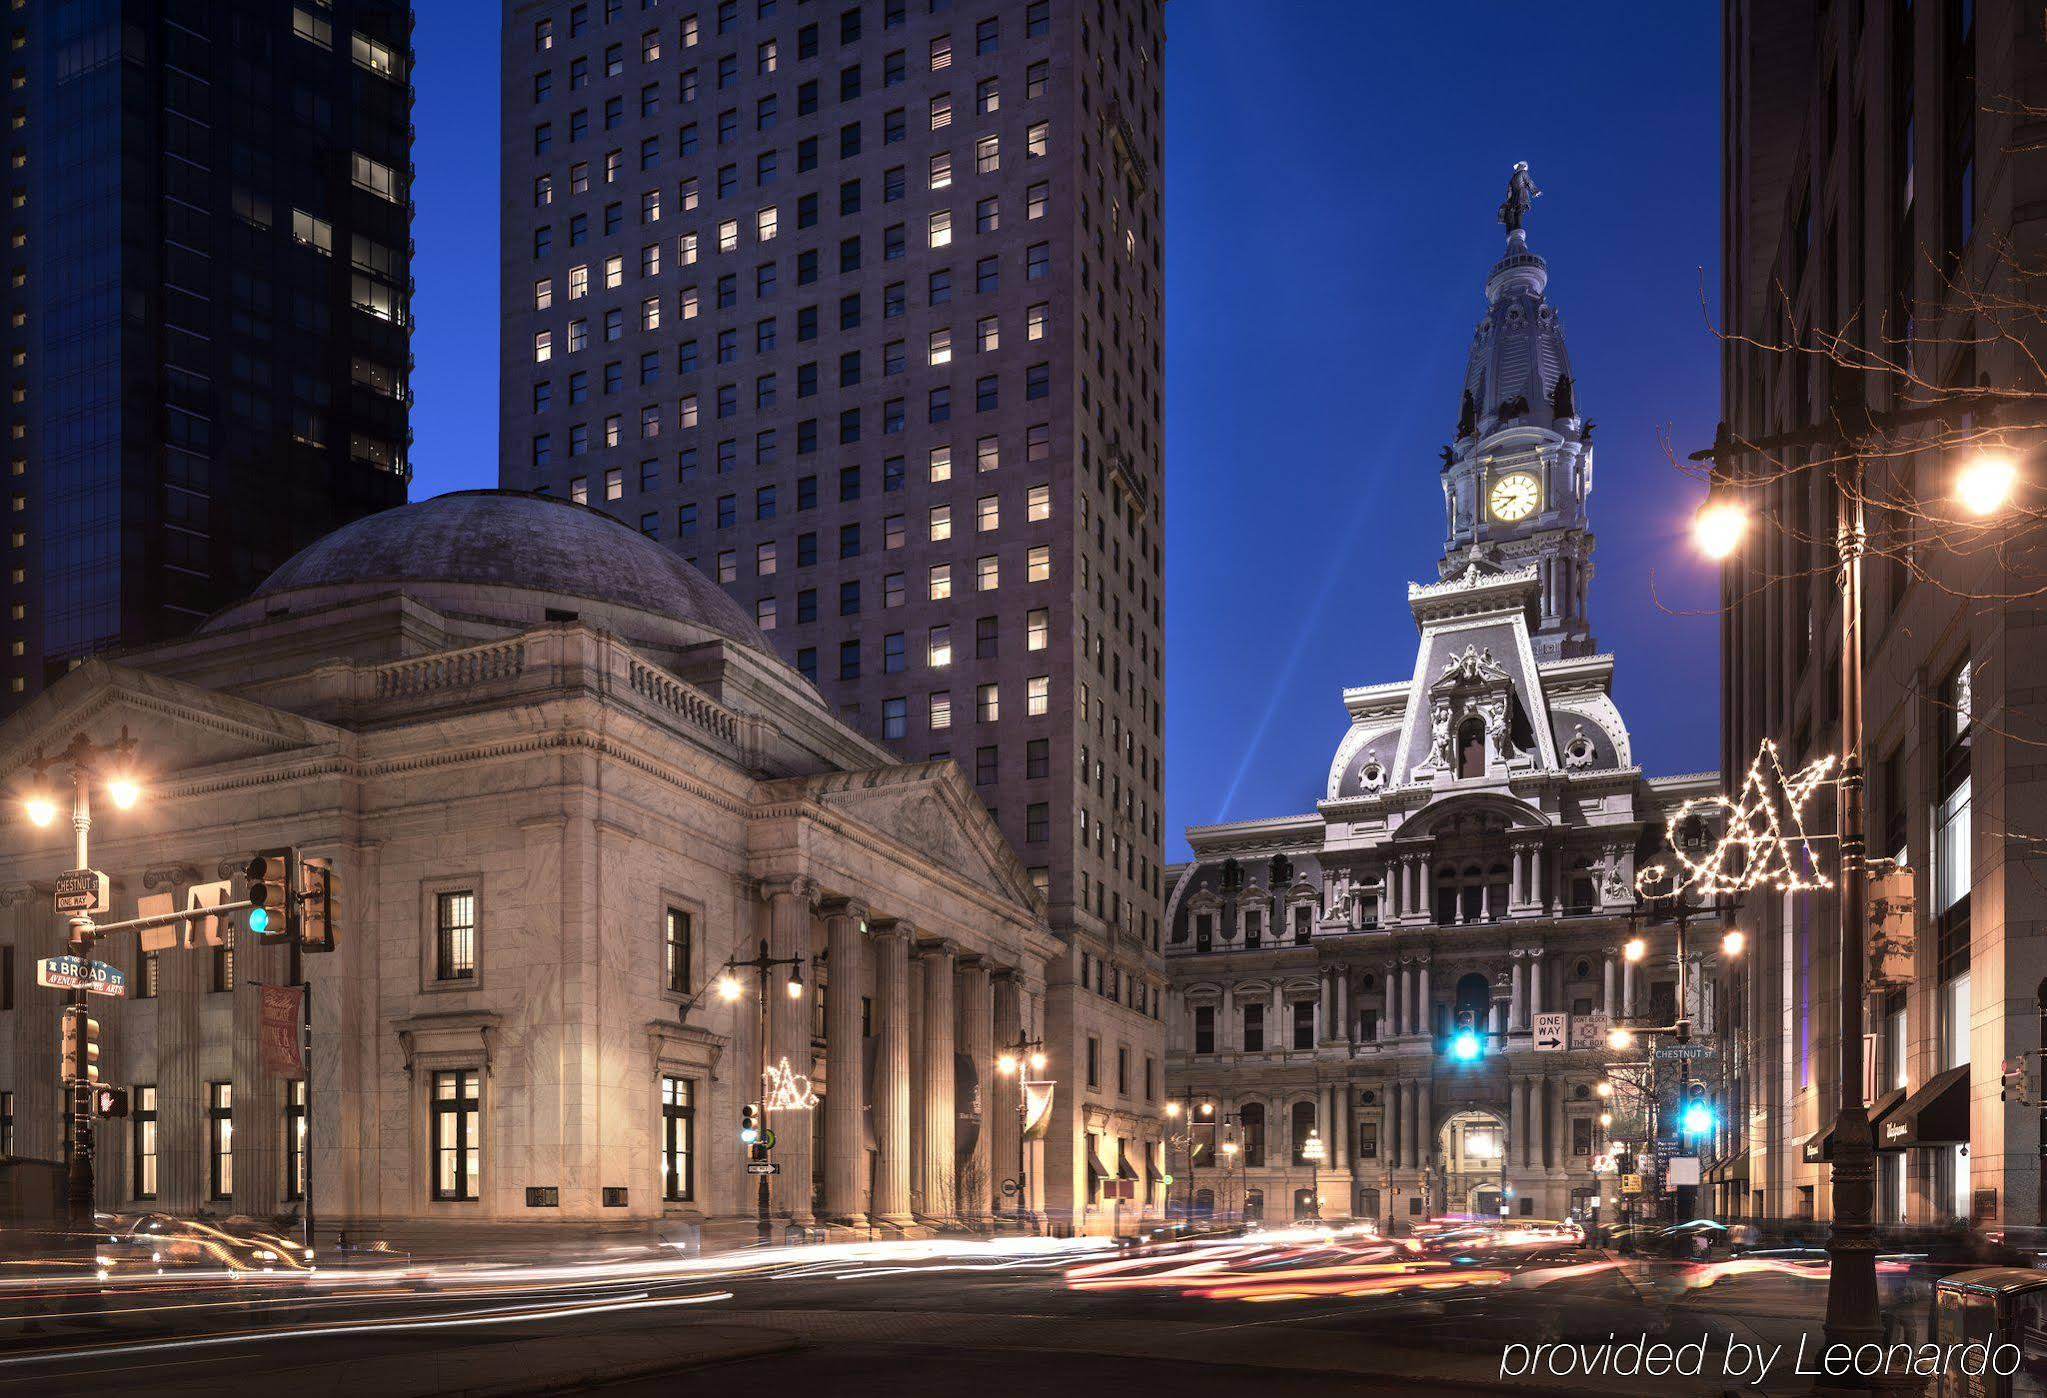 The Ritz Carlton Philadelphia